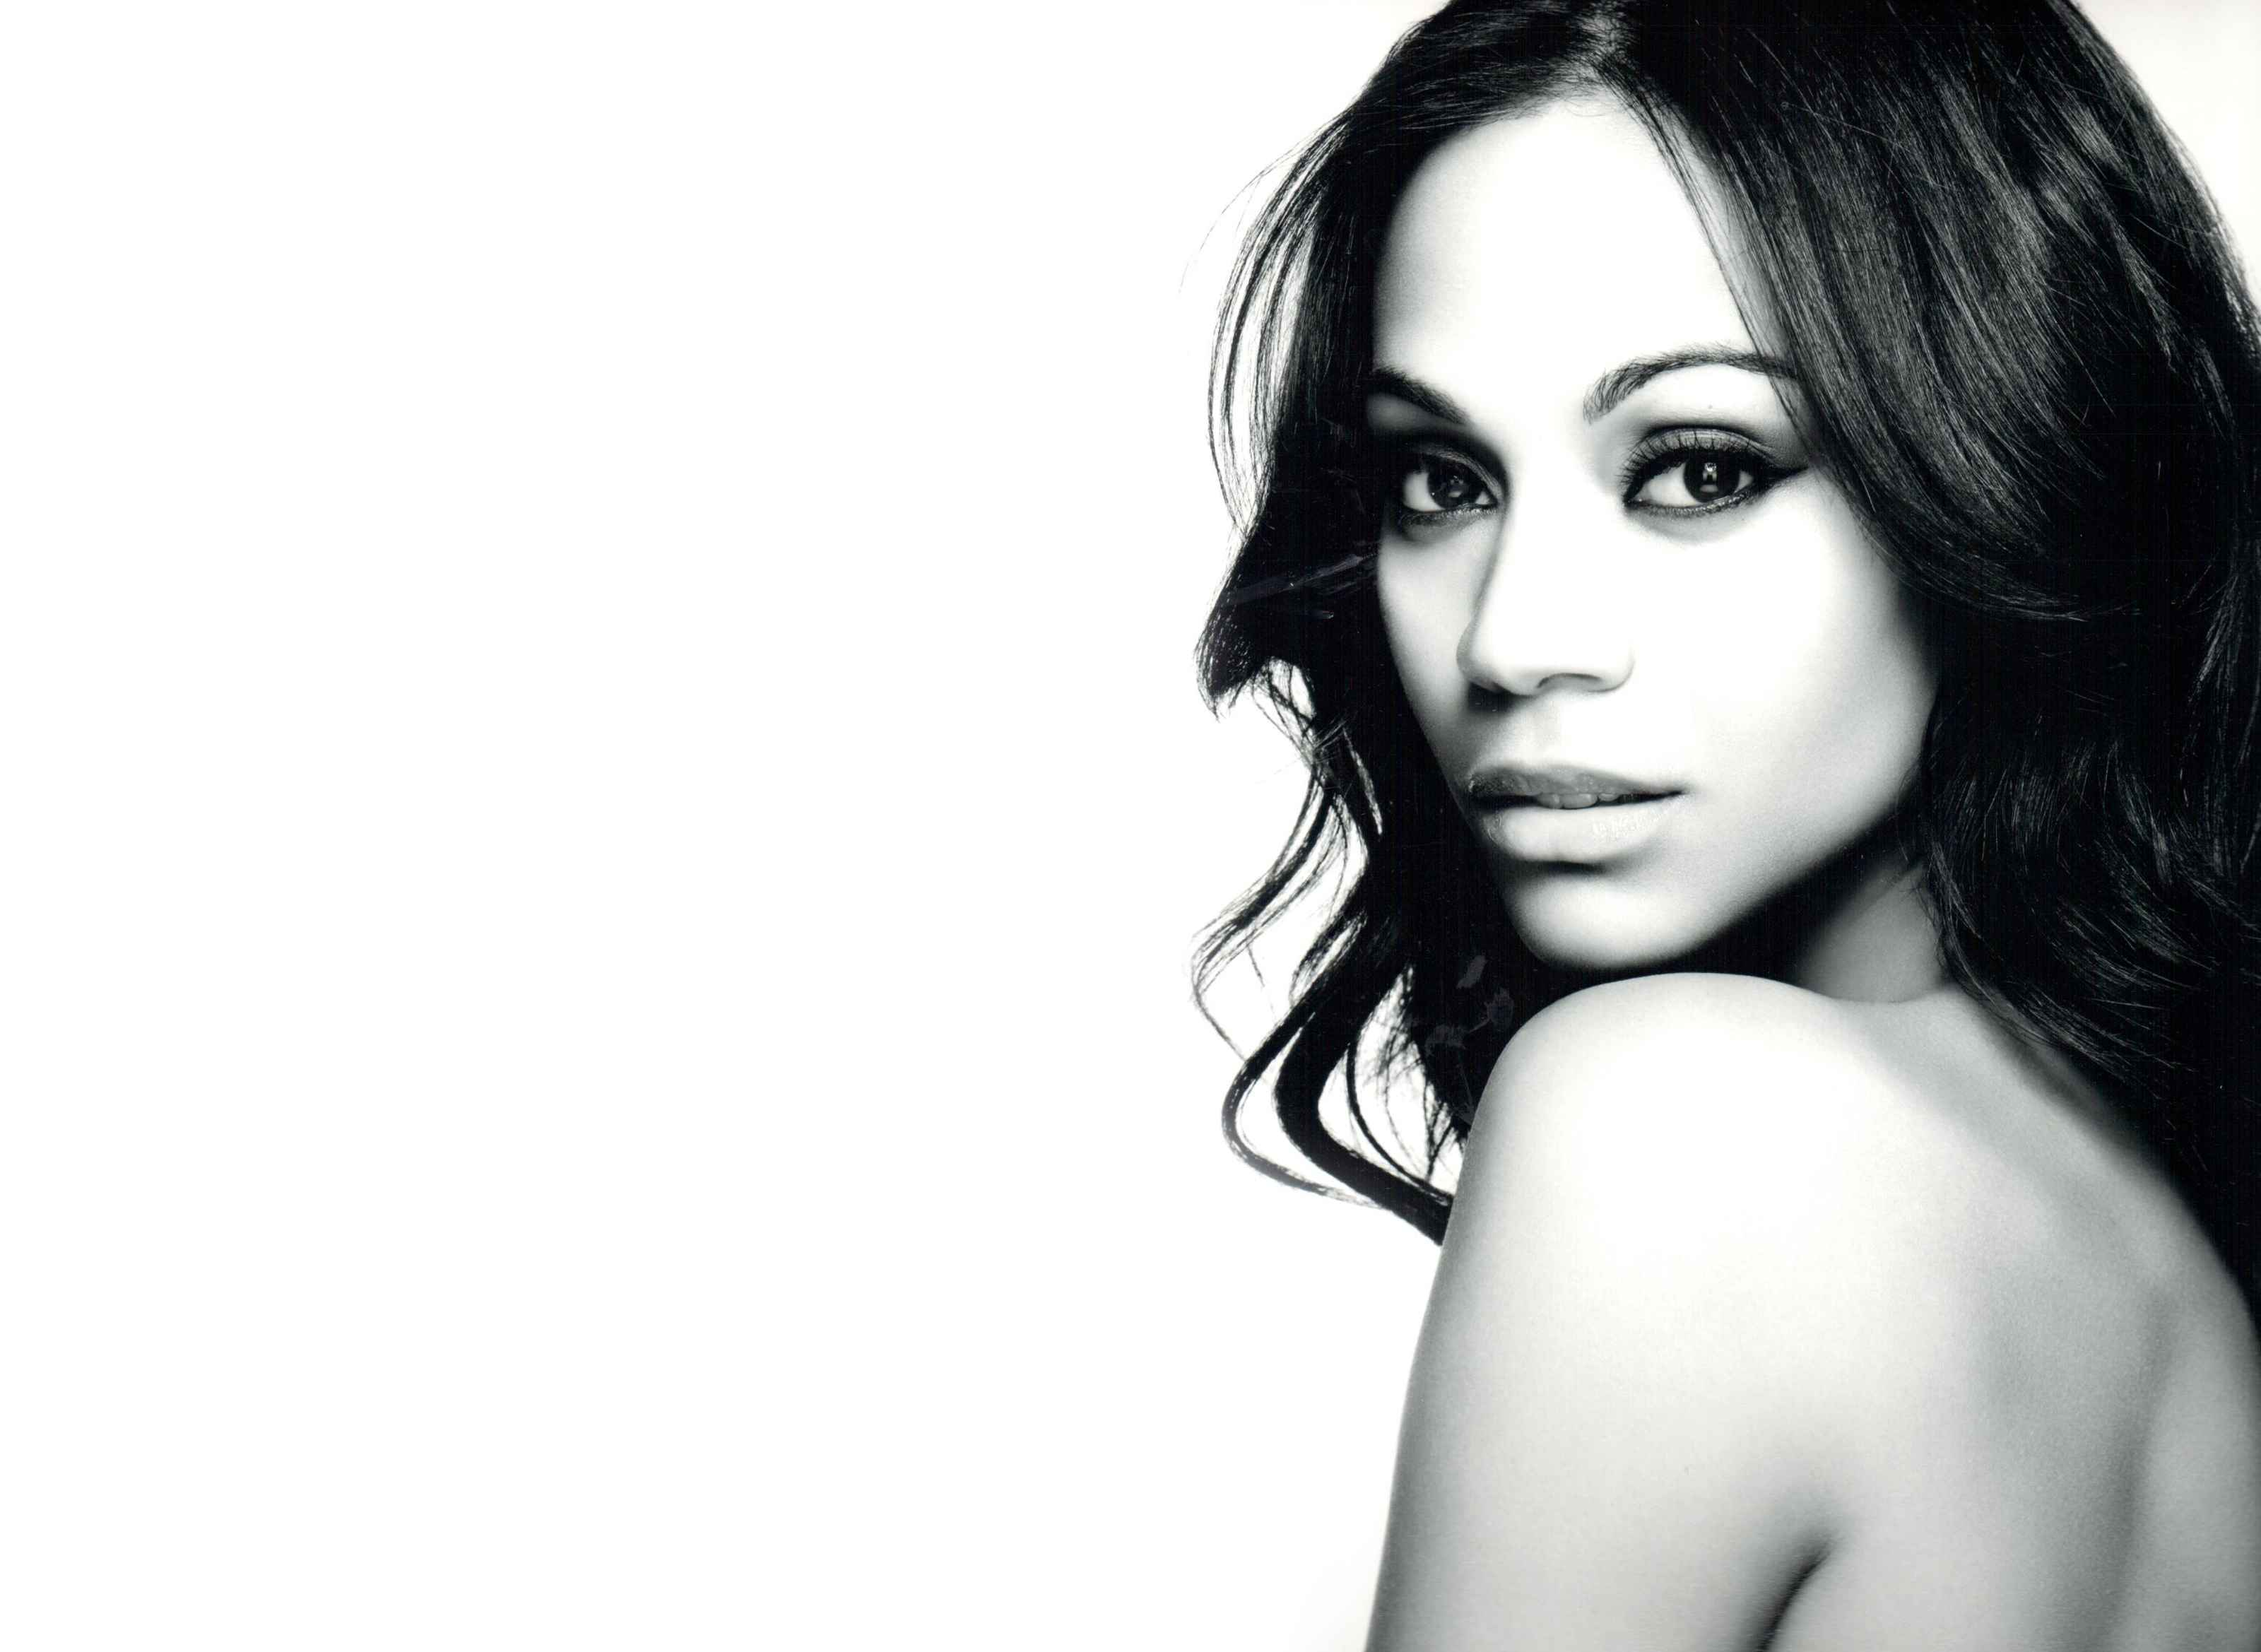 Zoe saldana wallpapers images photos pictures backgrounds - Zoe wallpaper ...